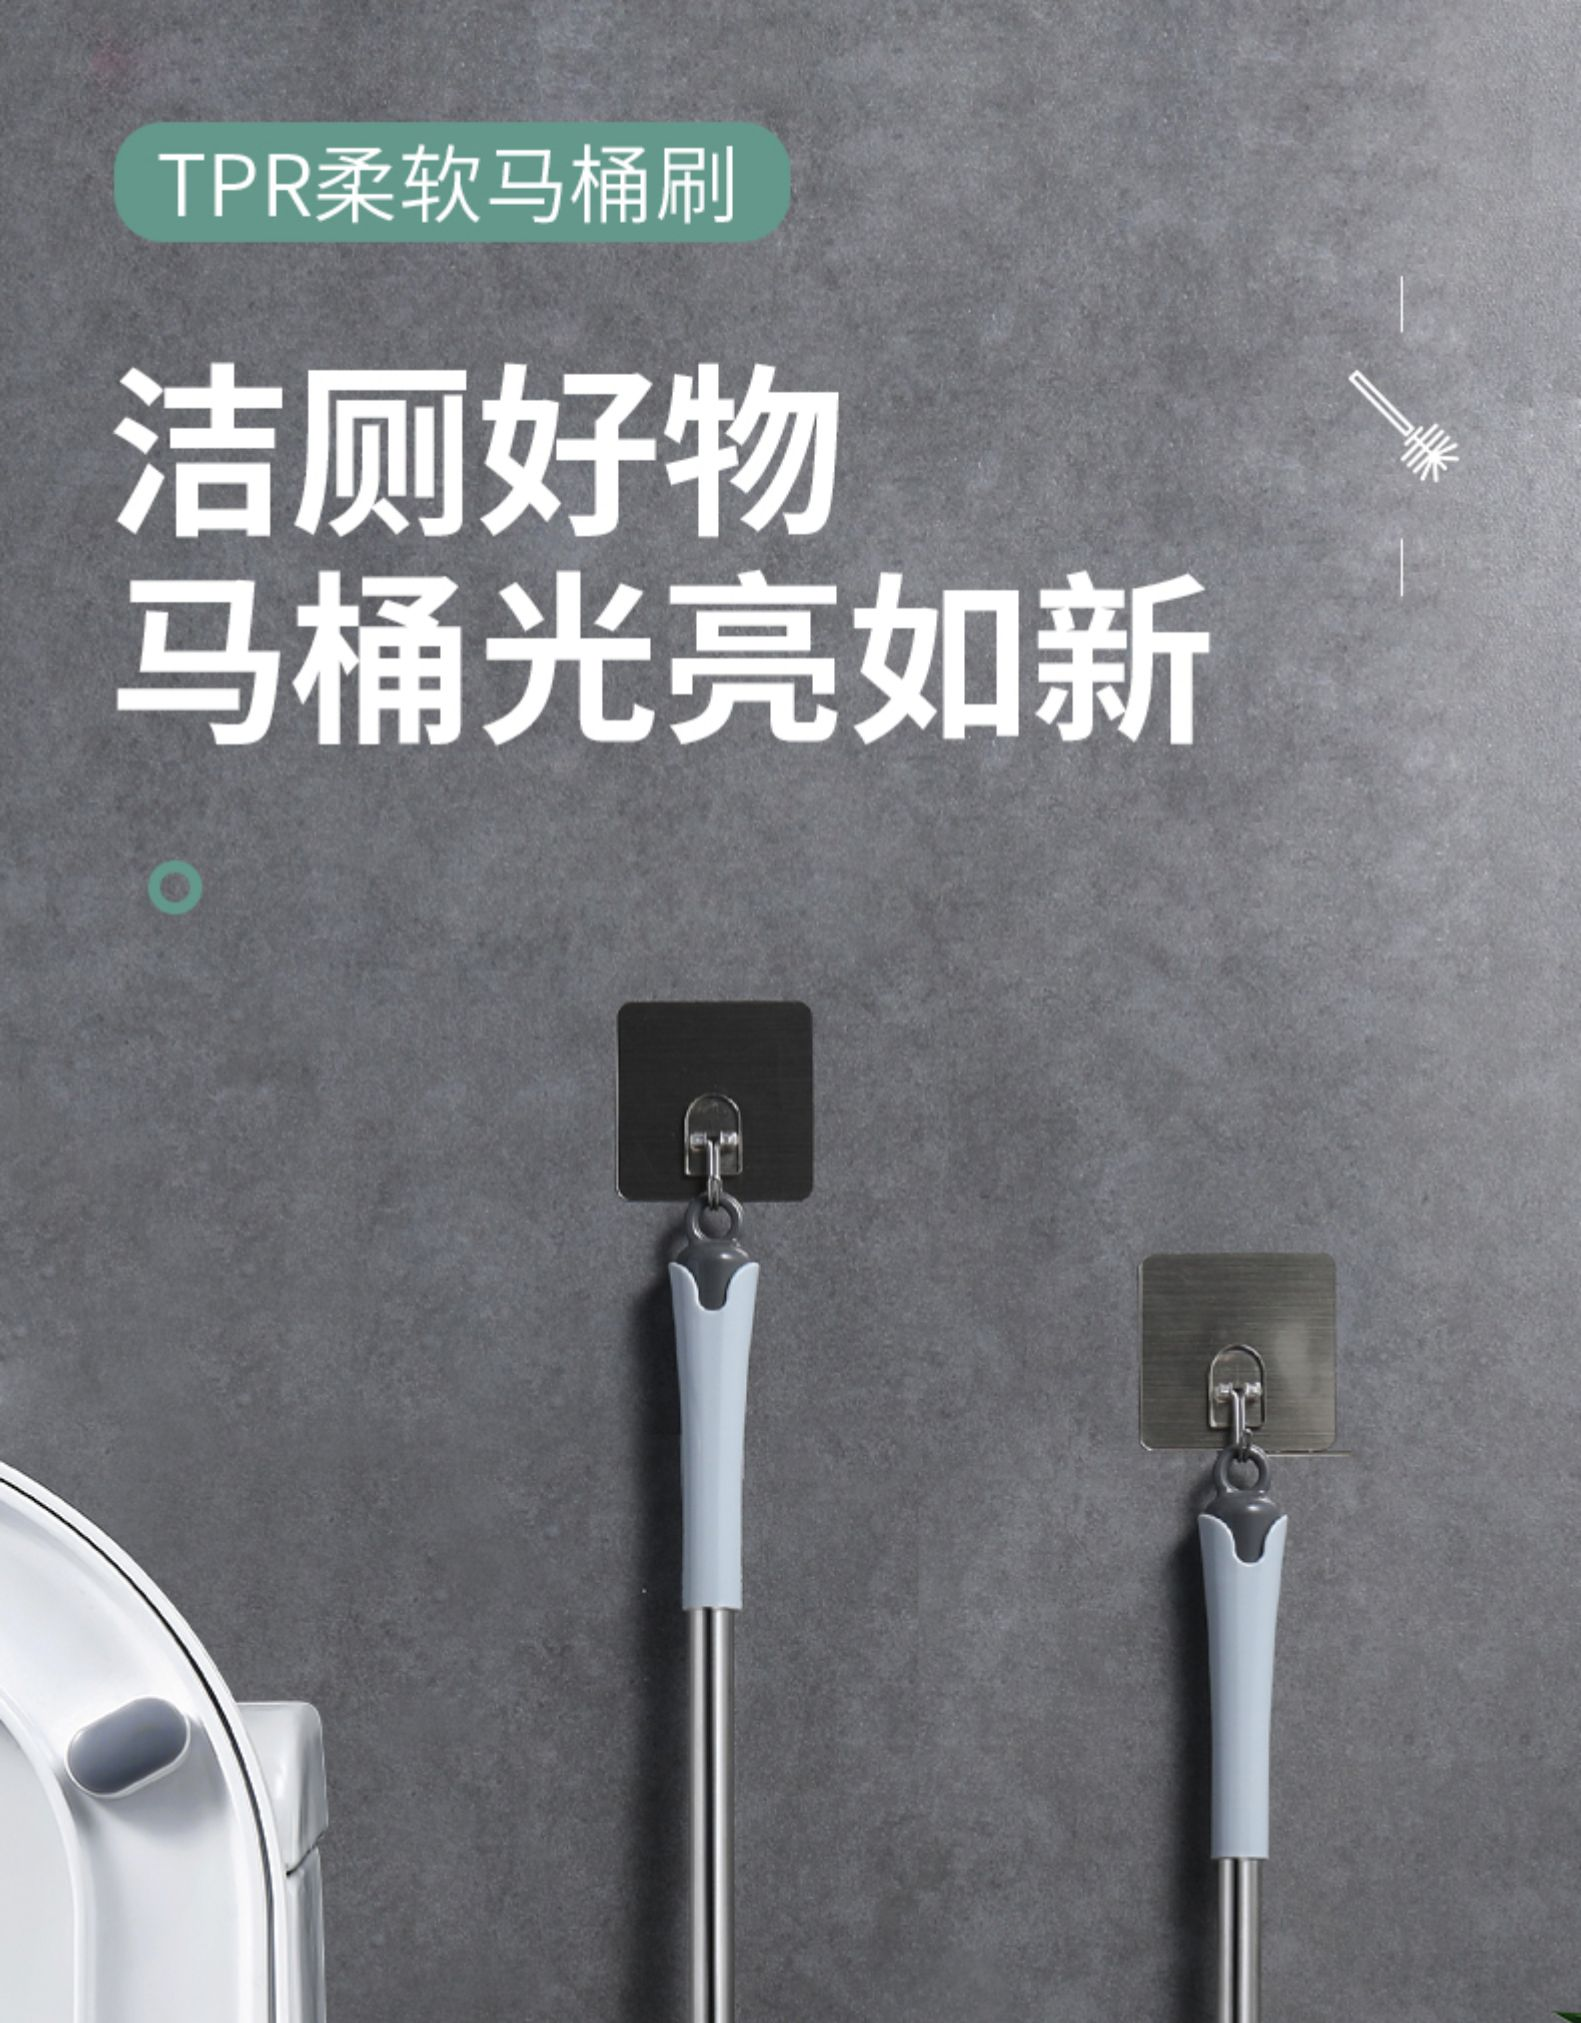 Convenient Silicone Toilet Brush Stainless Steel Durable Wall Mounted Black Toilet Brush Szczotka Do Wc Bathroom Products DK50TB enlarge